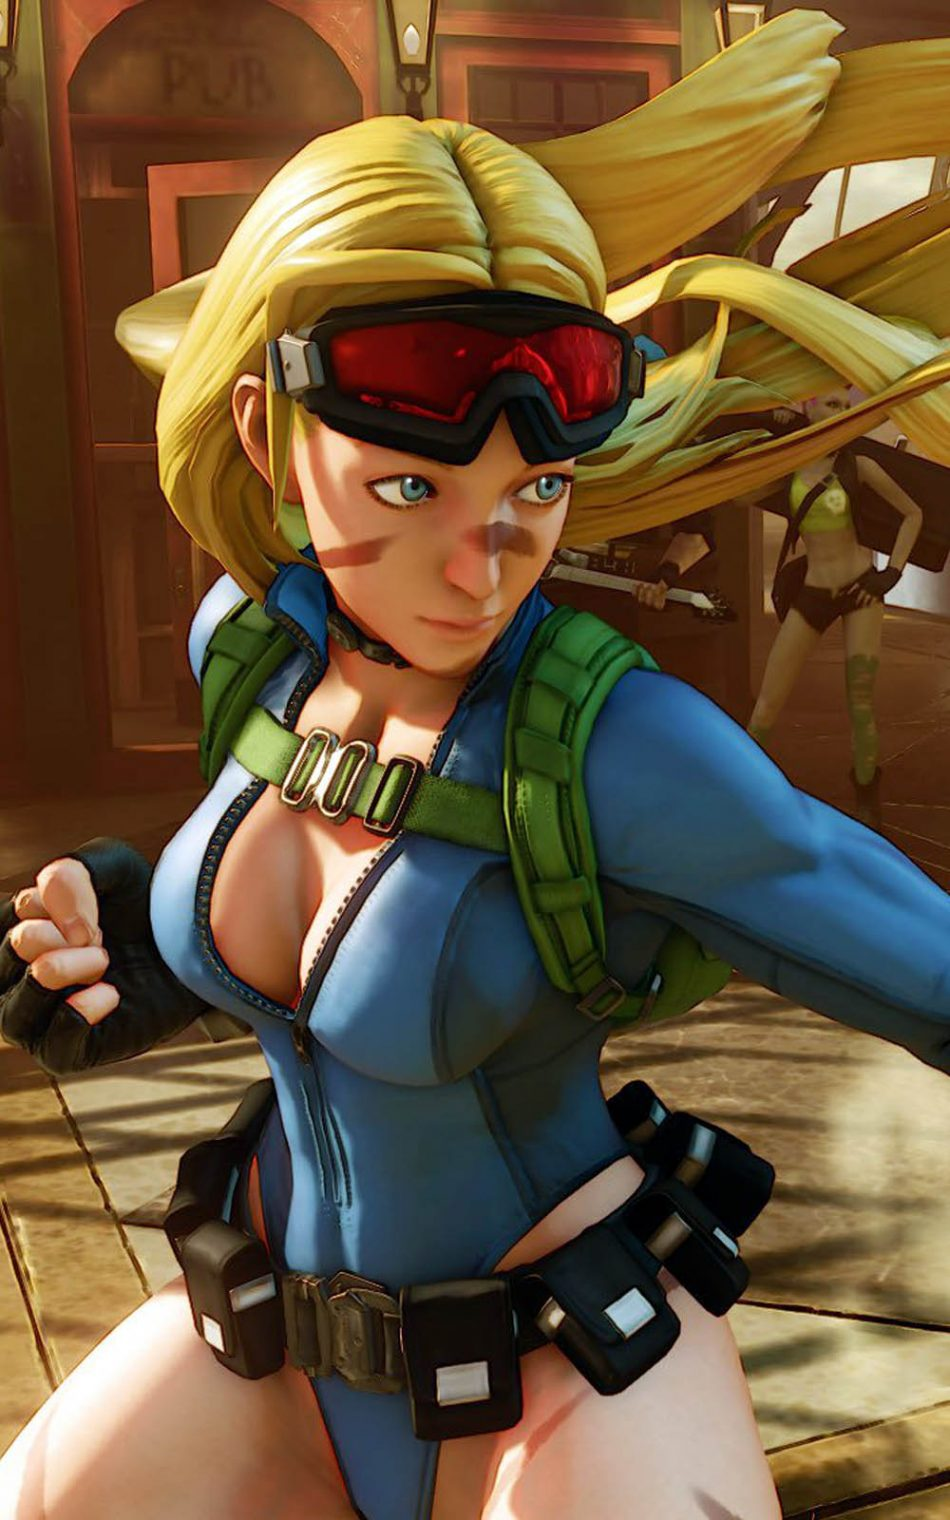 download cammy street fighter 5 hero free pure 4k ultra hd mobile